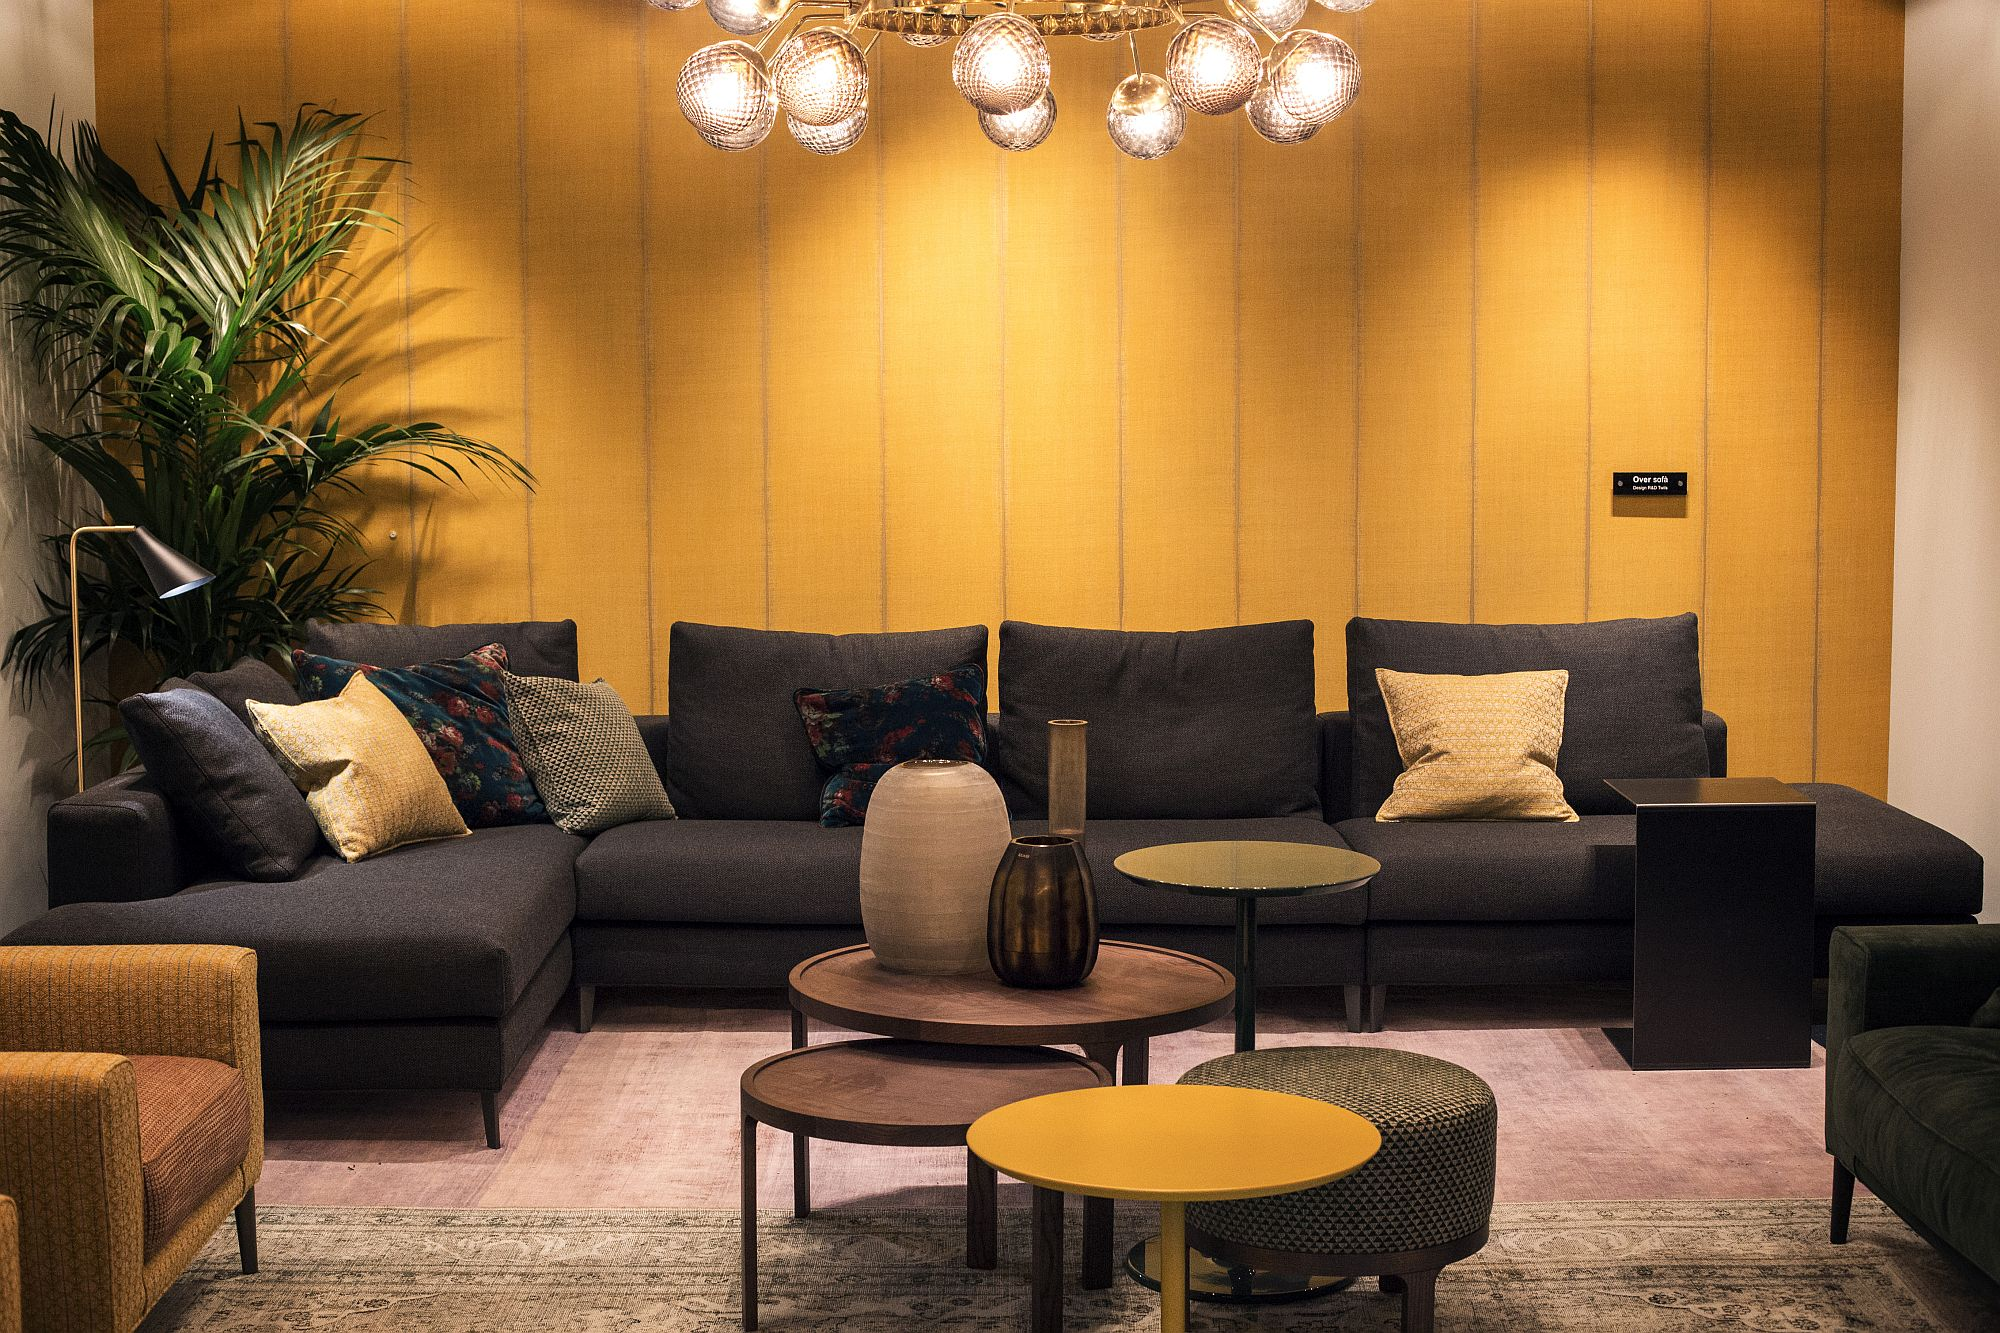 Cool orange coffee table complements the backdrop even as black couch brings style and elegance